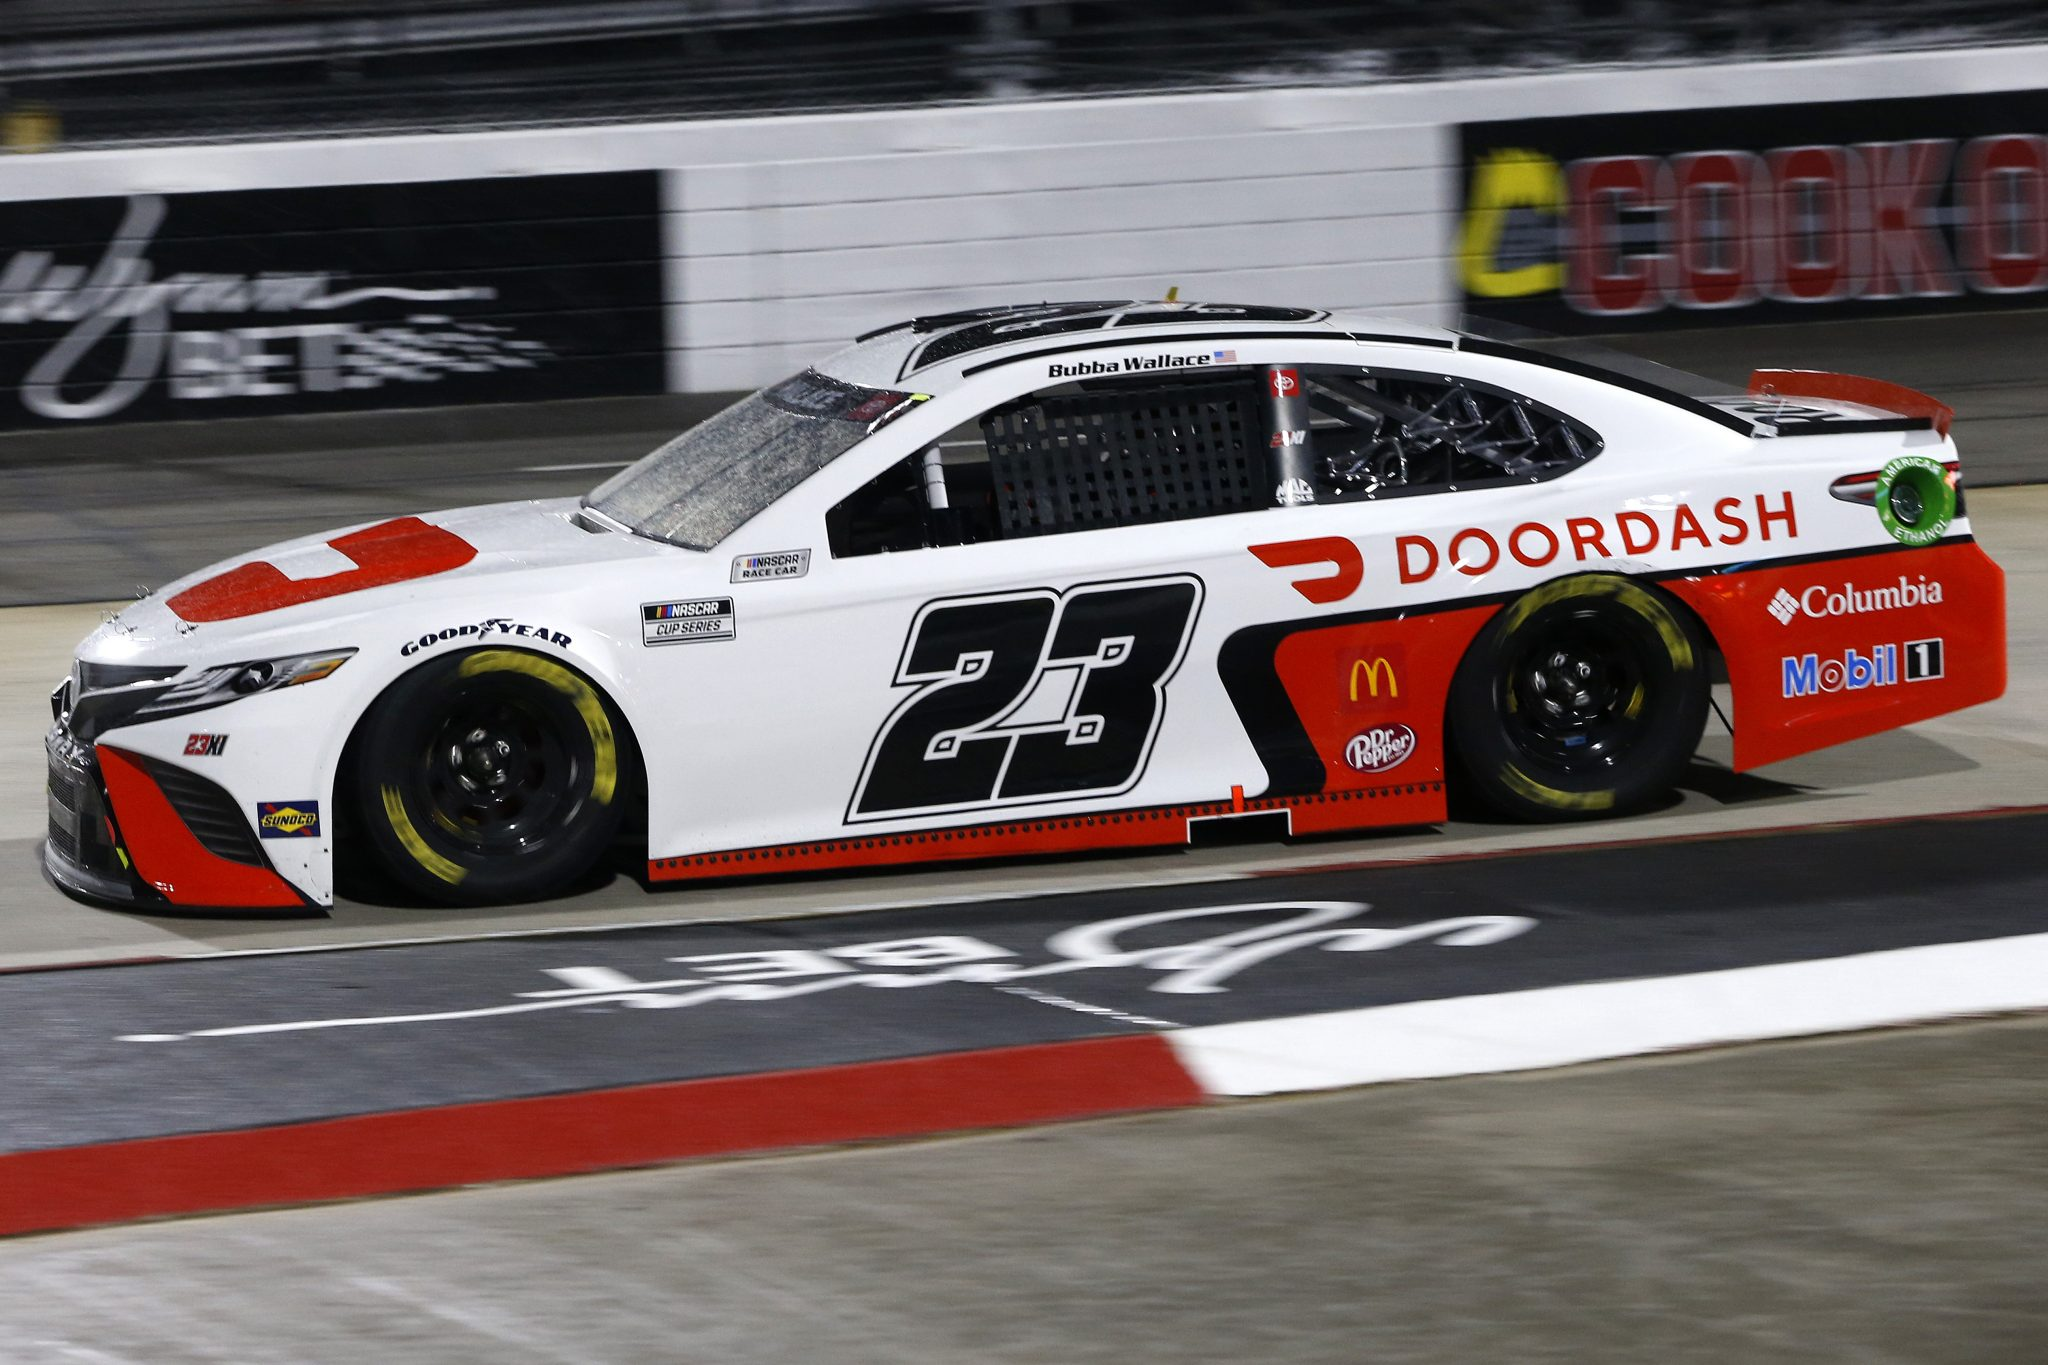 MARTINSVILLE, VIRGINIA - APRIL 10: Bubba Wallace, driver of the #23 DoorDash Toyota, drives during the NASCAR Cup Series Blue-Emu Maximum Pain Relief 500 at Martinsville Speedway on April 10, 2021 in Martinsville, Virginia. (Photo by Brian Lawdermilk/Getty Images) | Getty Images